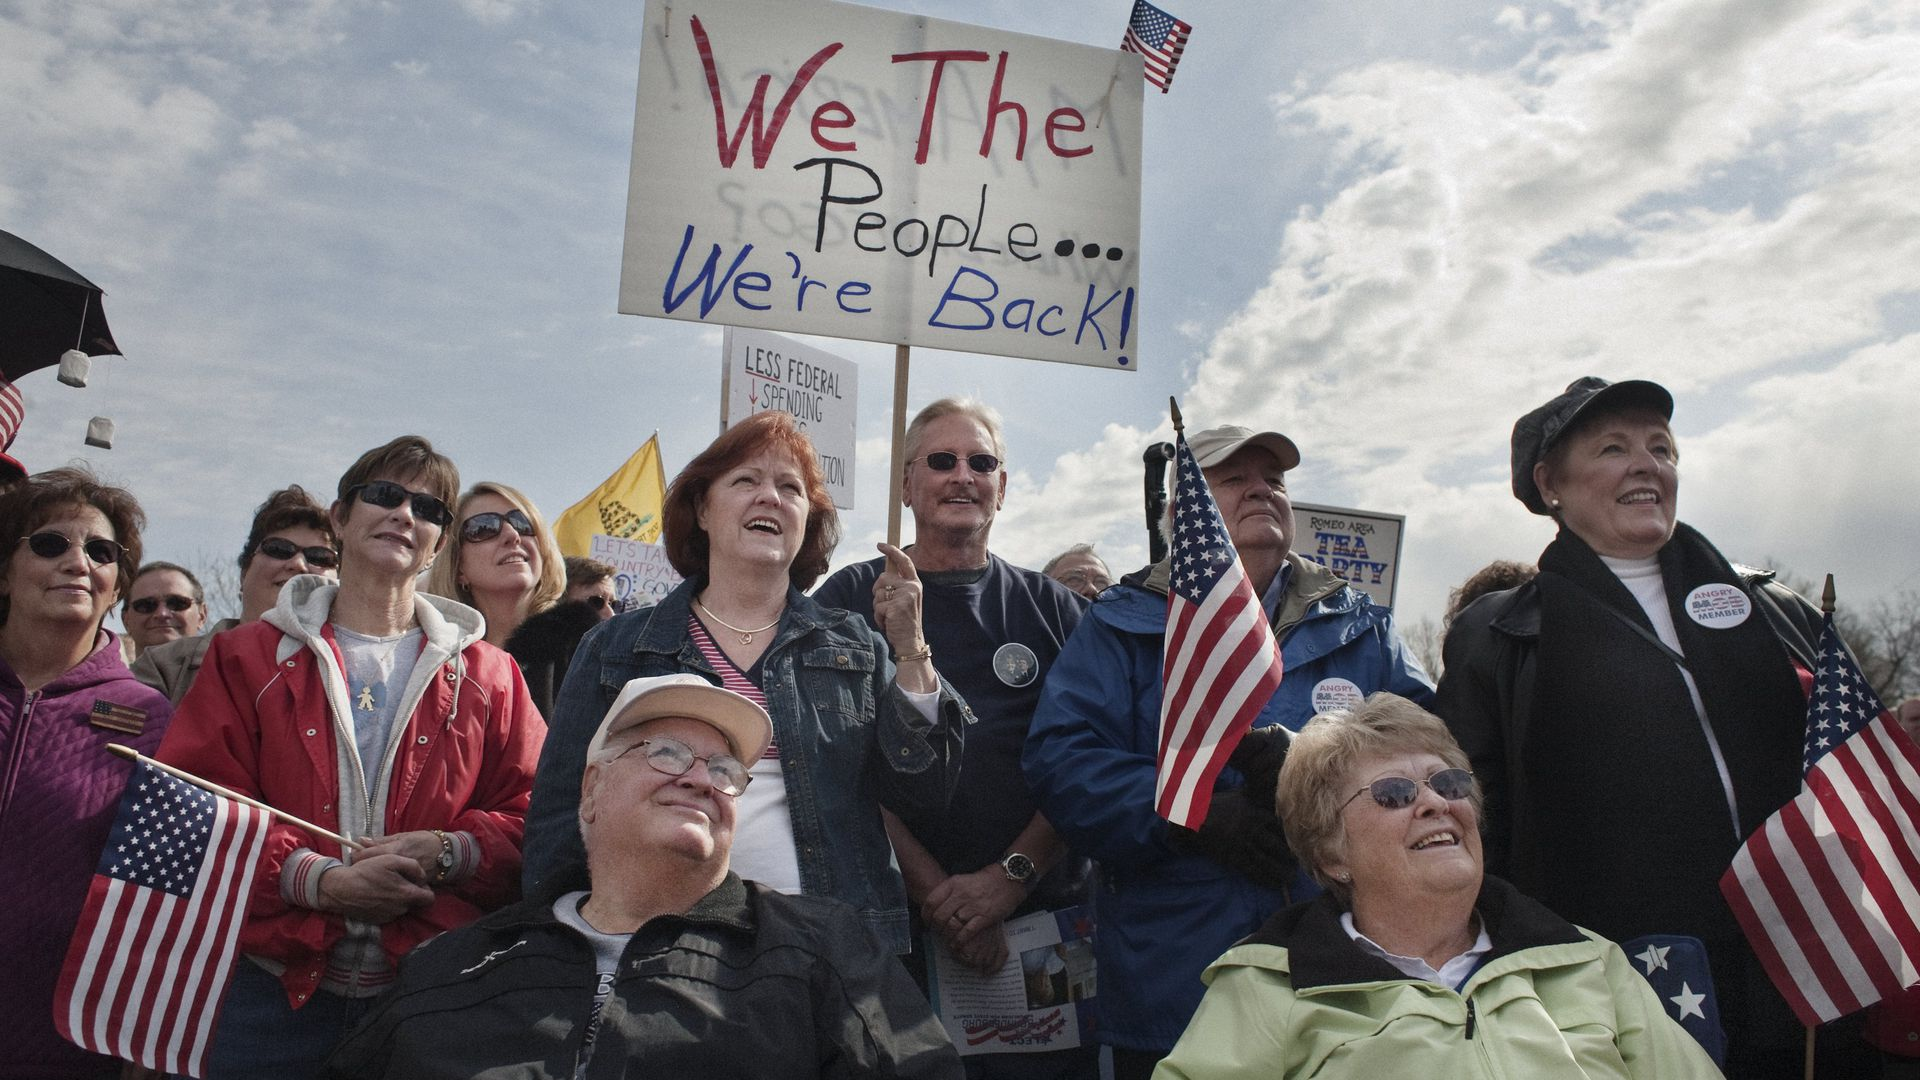 Supporters of the Tea Party movement listen to speakers at a Tea Party Express rally in 2010.